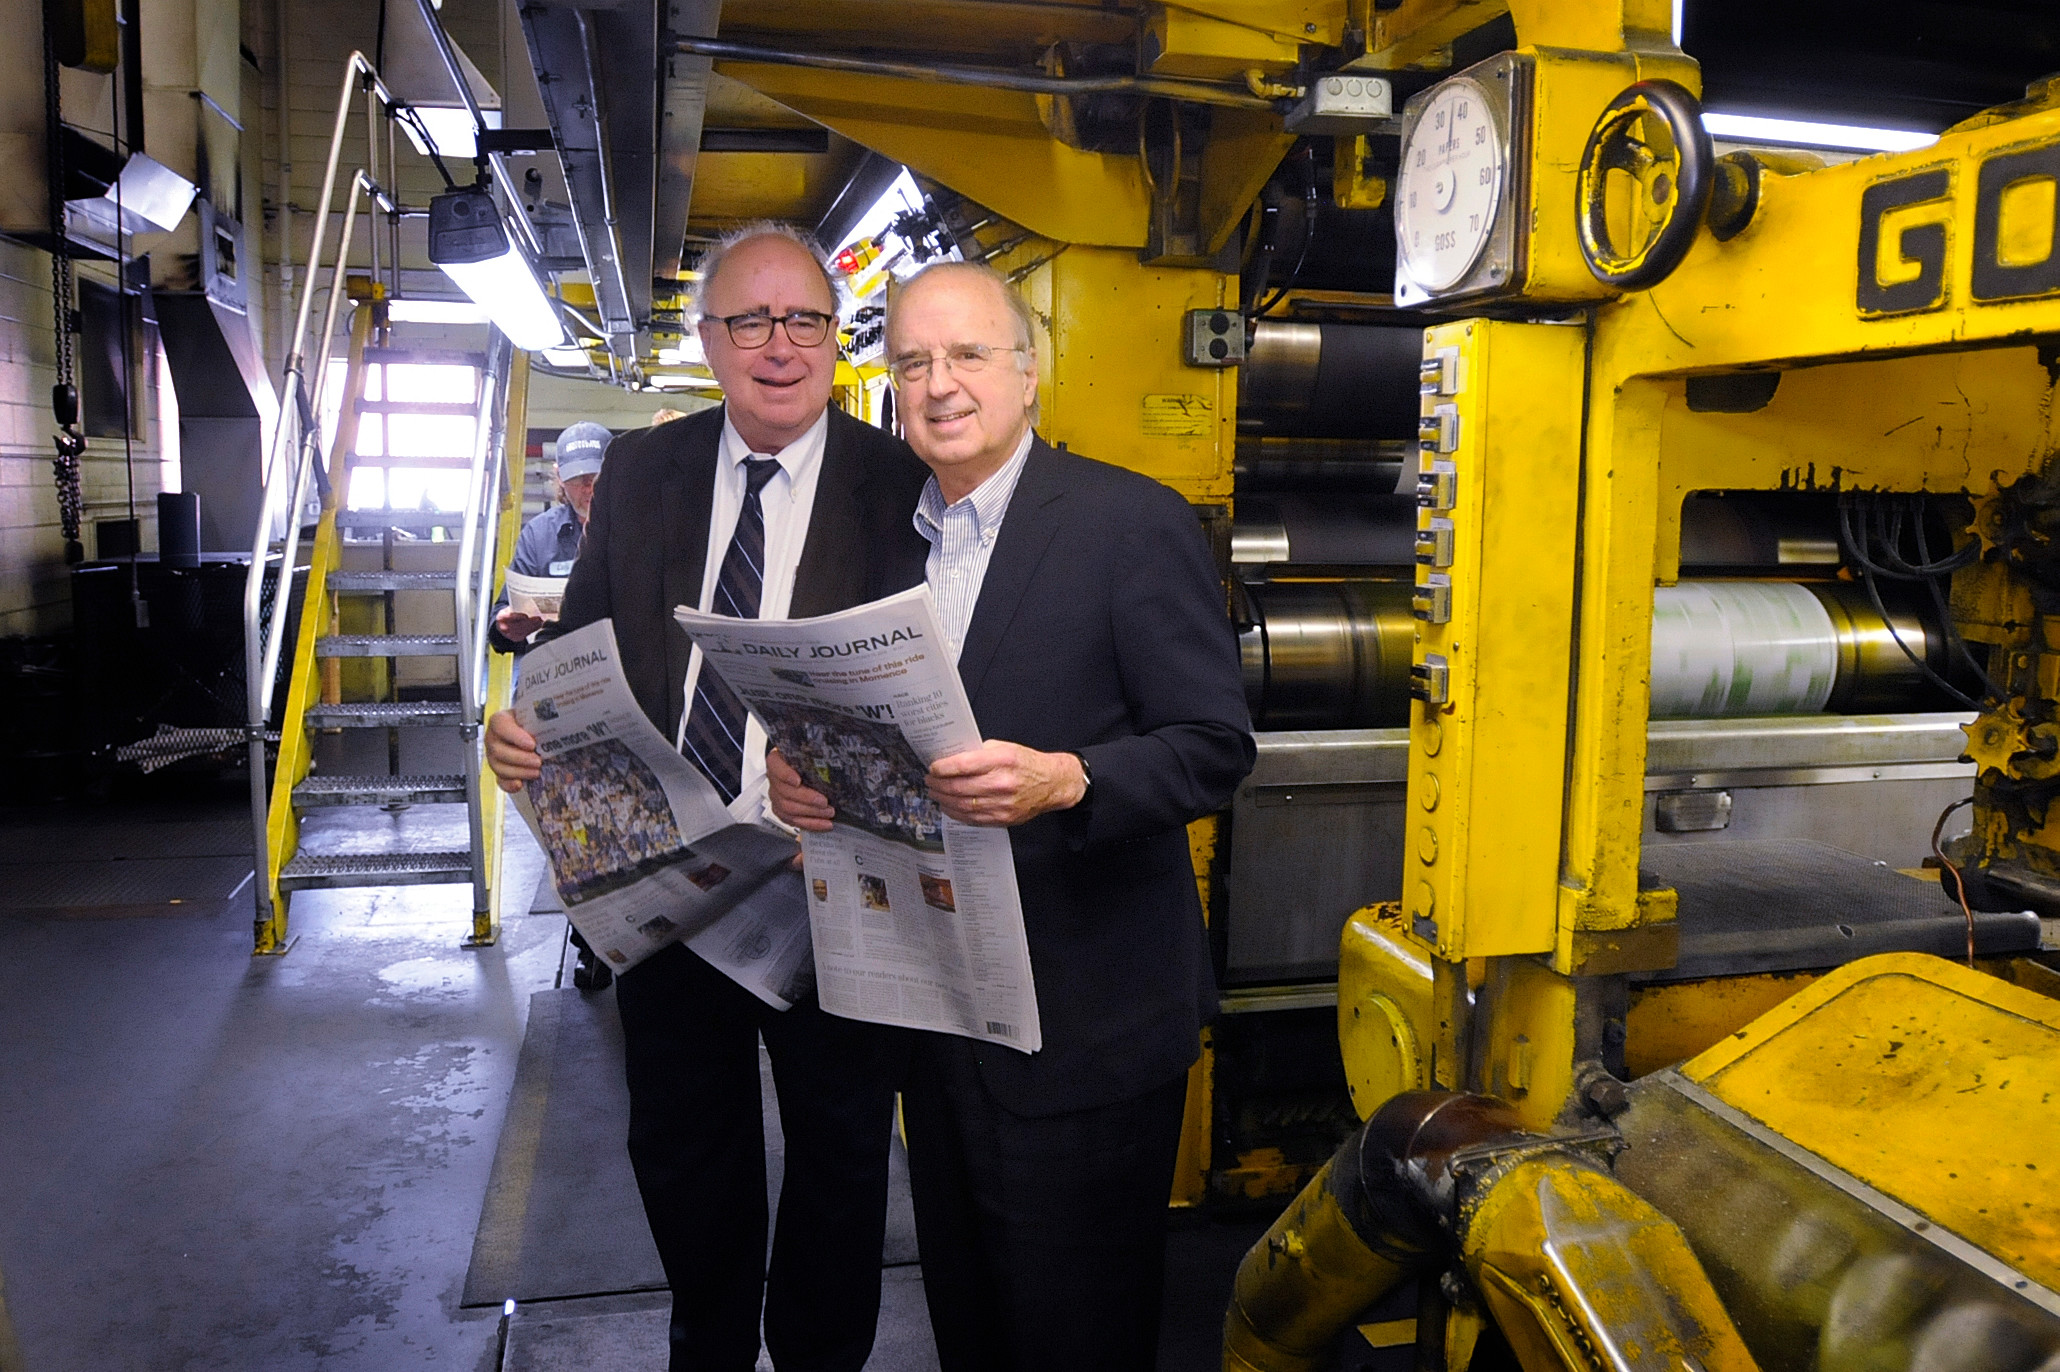 Tom and Rob Small get their first look at the redesign of the (Kankakee, Ill.) Daily Journal in the press room of launch day.